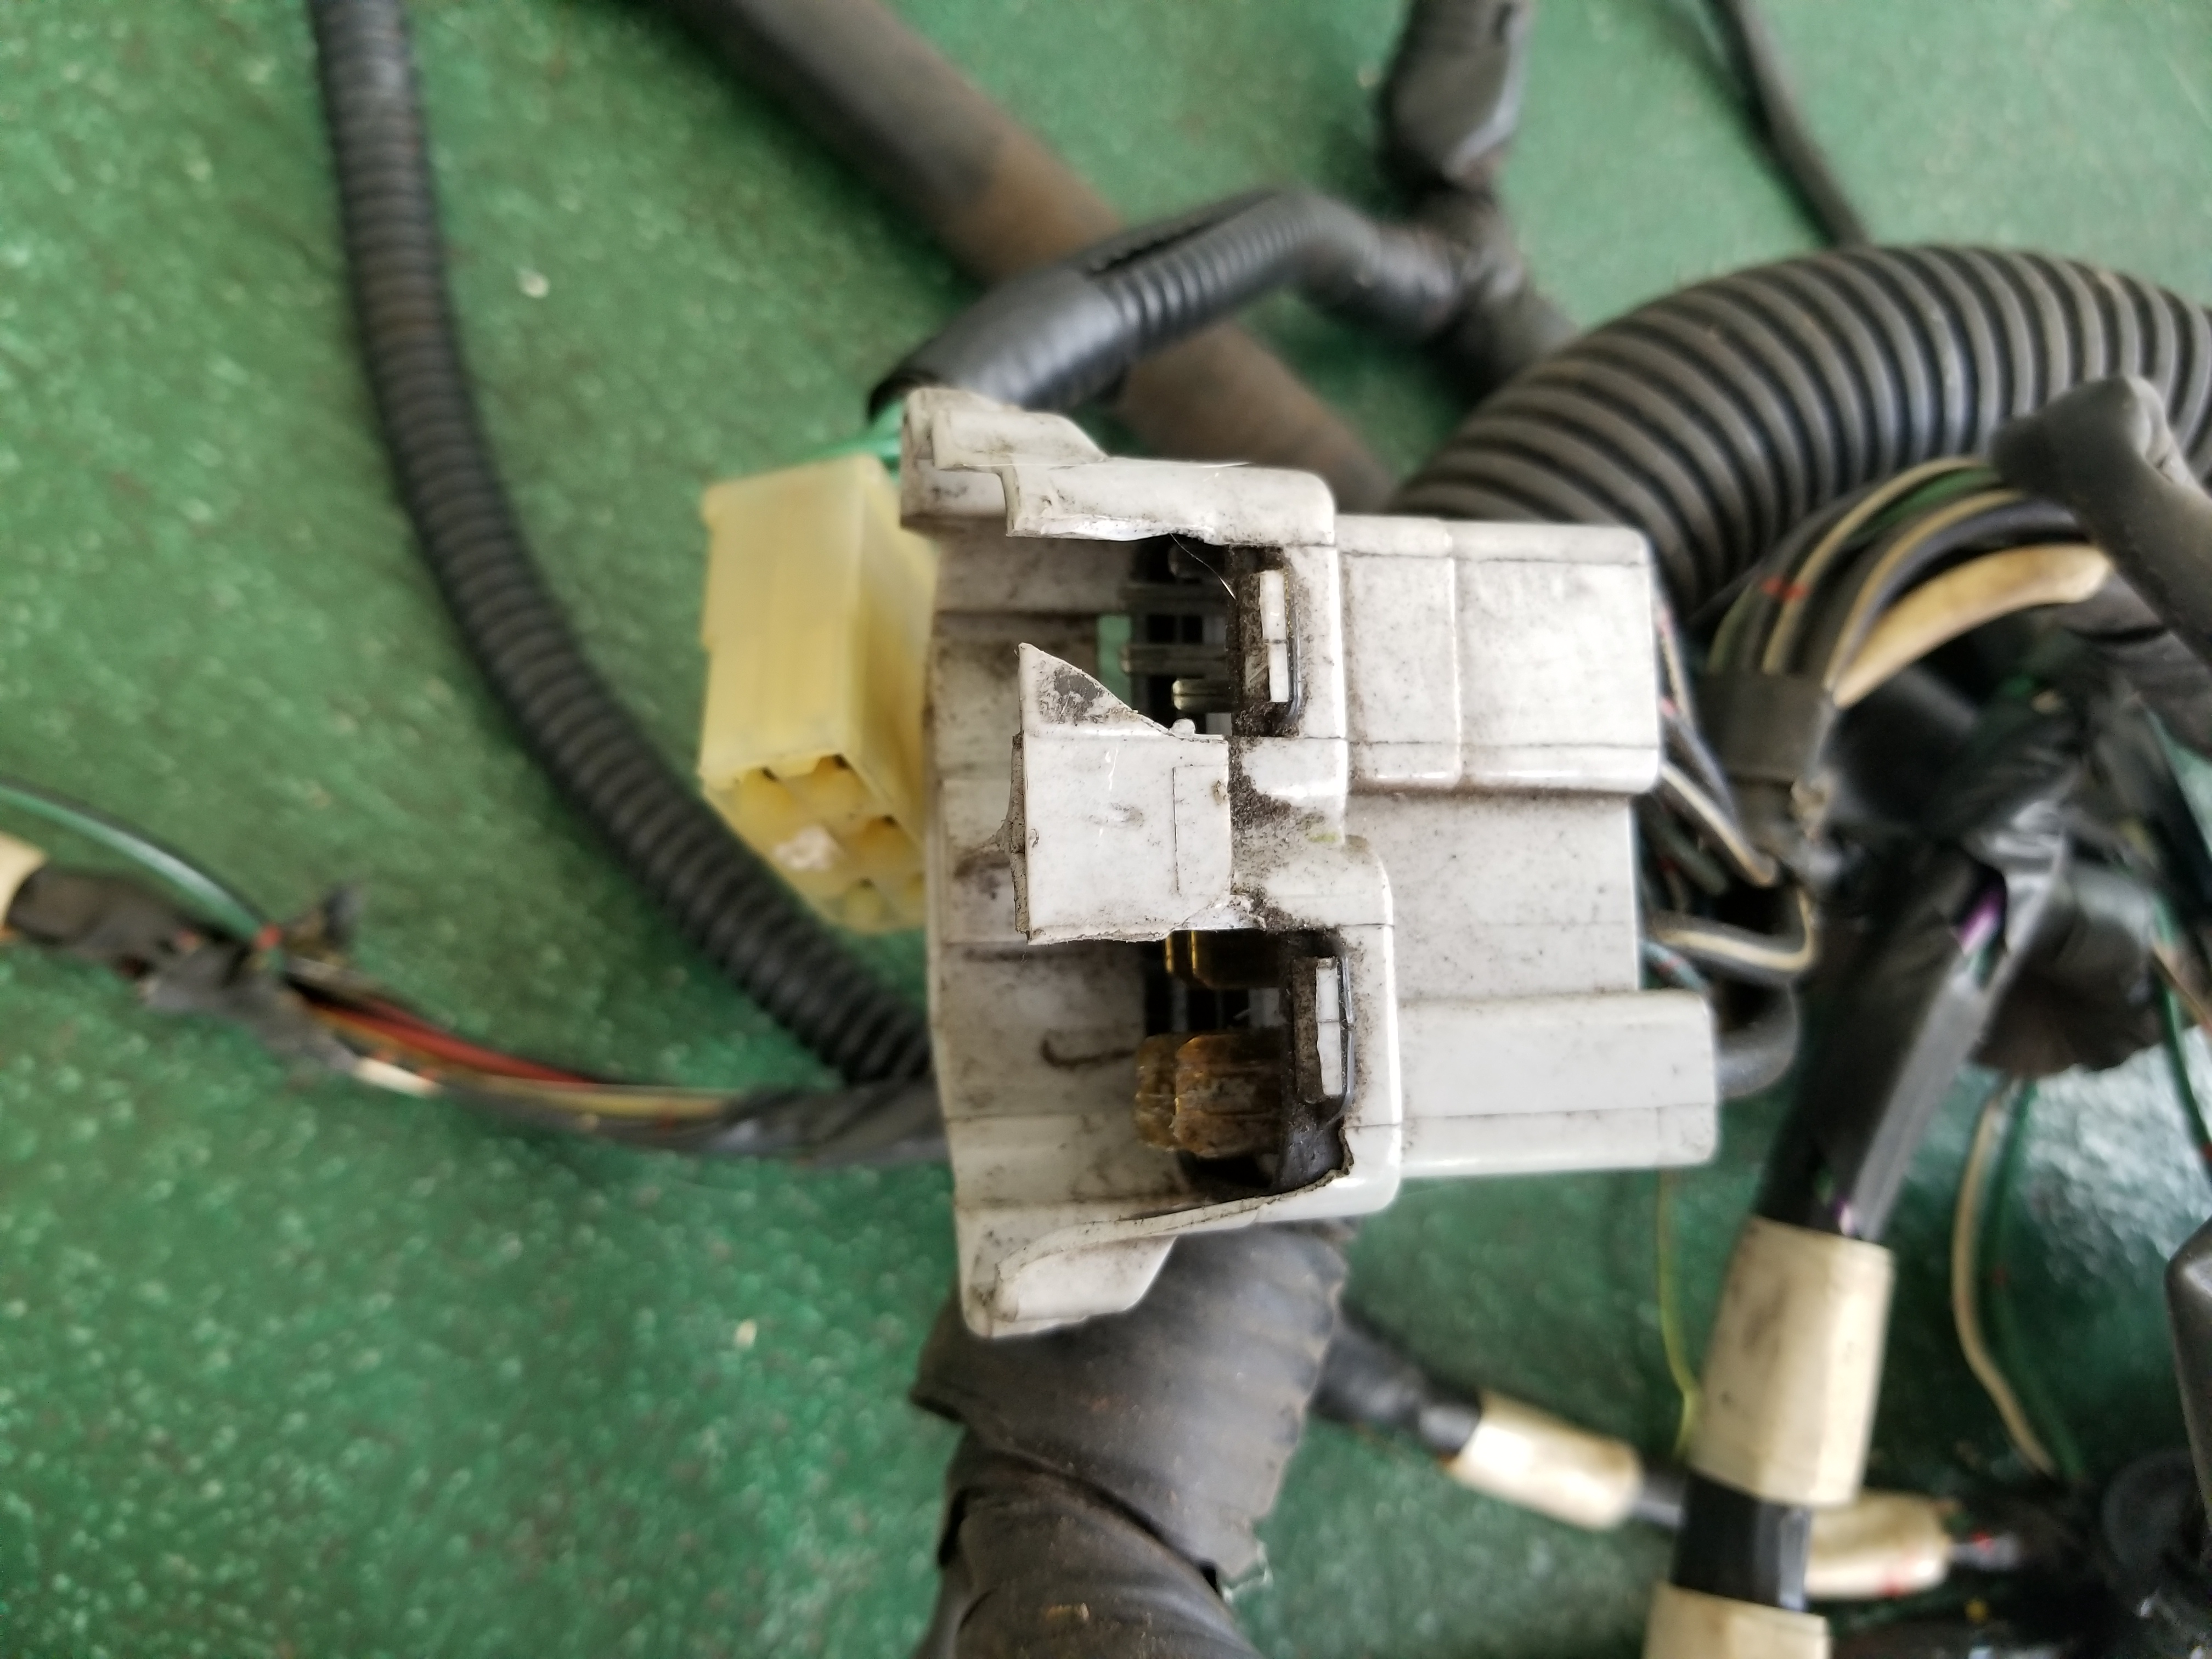 Used Mki Mr2 Engine Room Main Wiring Harness Twos R Us The Wire Green Compartment Removed From A 1985 Parts Car Overall Good Condition But Two Plug Connector By Battery Was Brittle